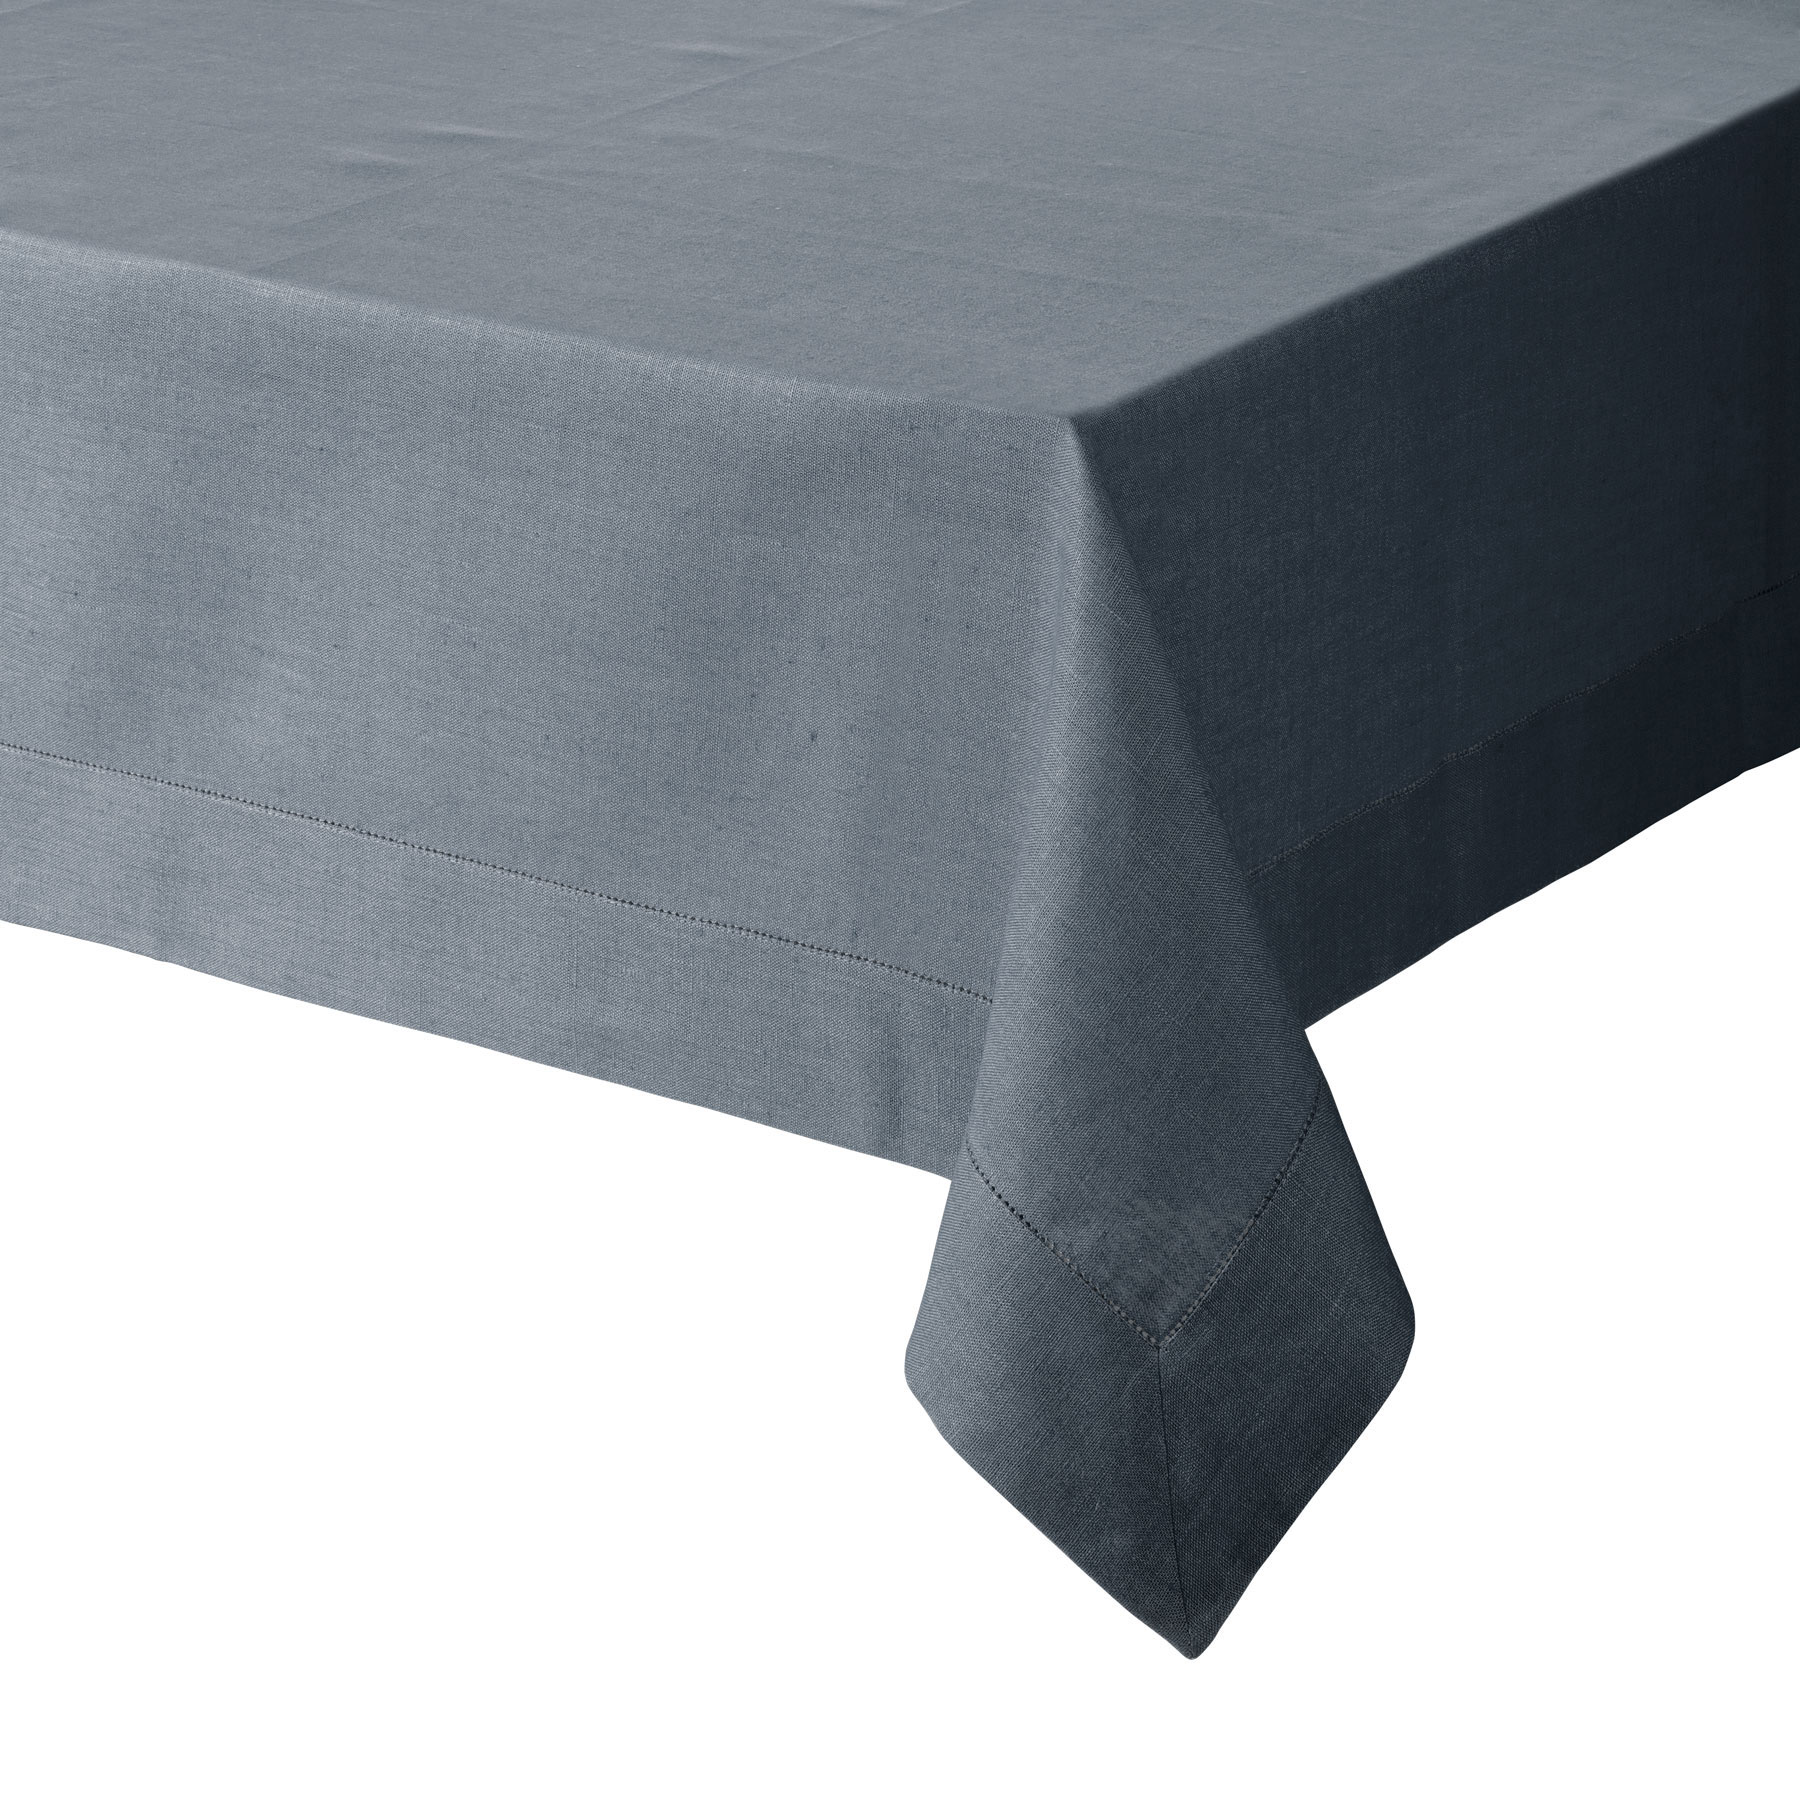 TABLECLOTH <br />quicksilver gray